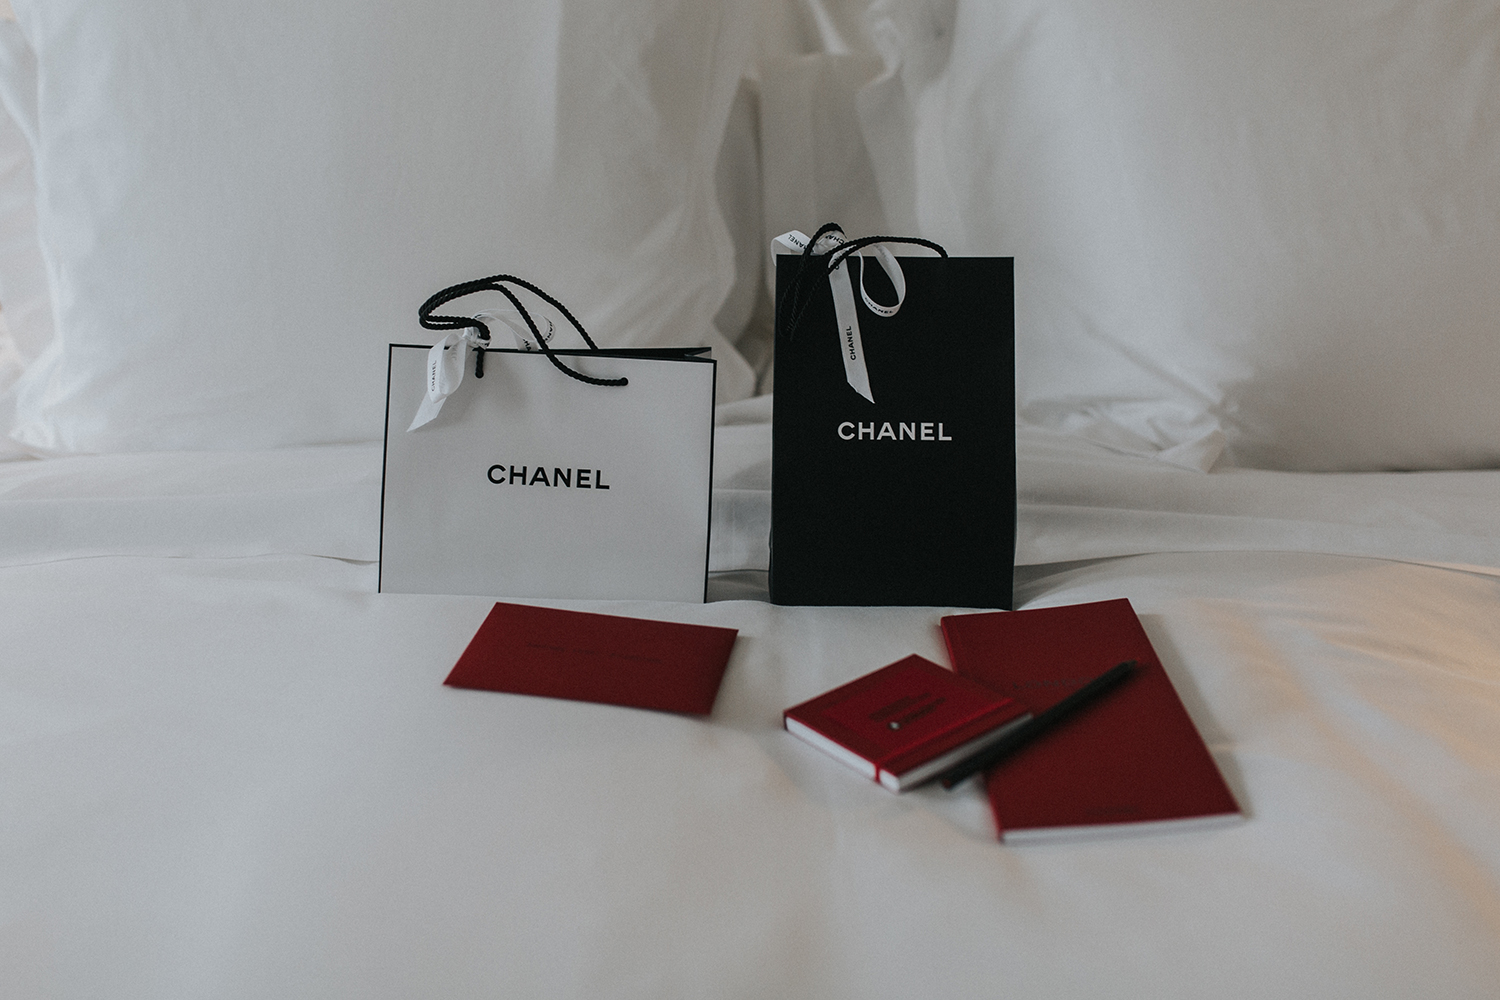 chanel-lerougecollection1-63